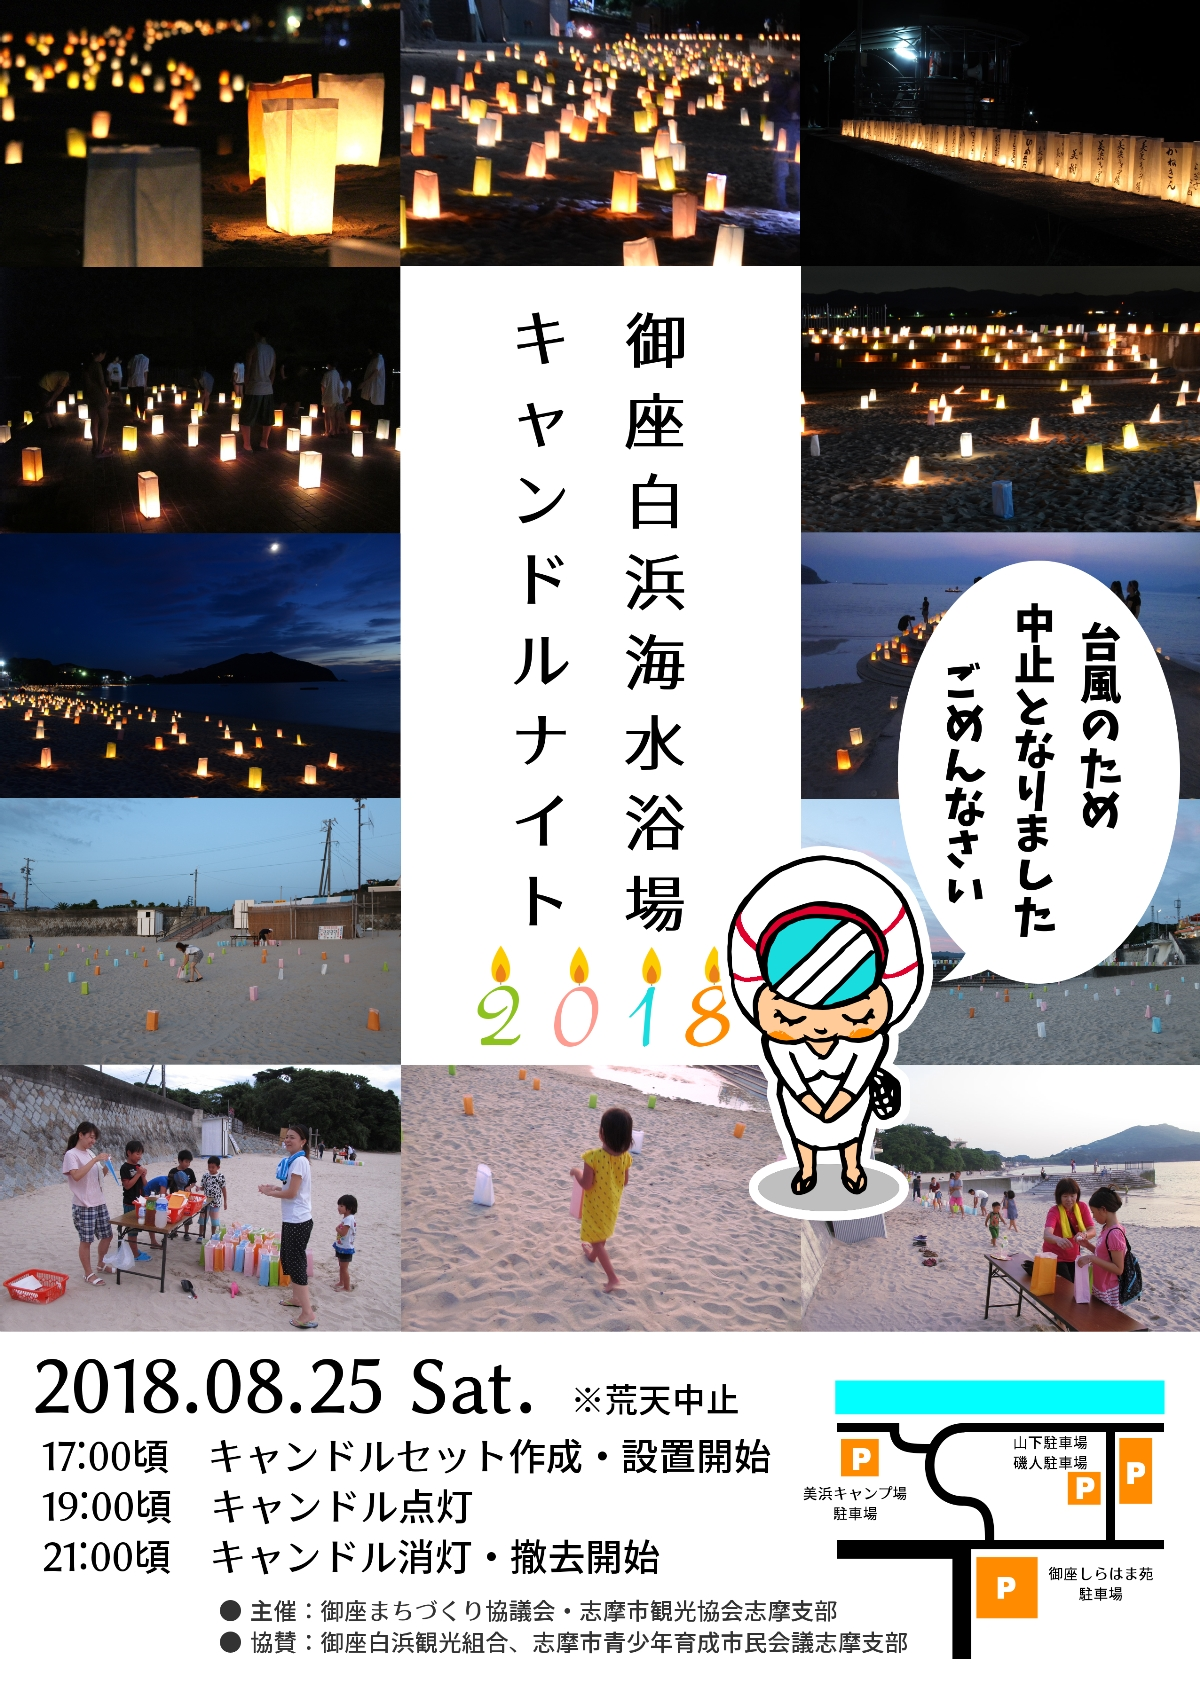 gozashirahama_candle-night_2018_20180823_1200x1683